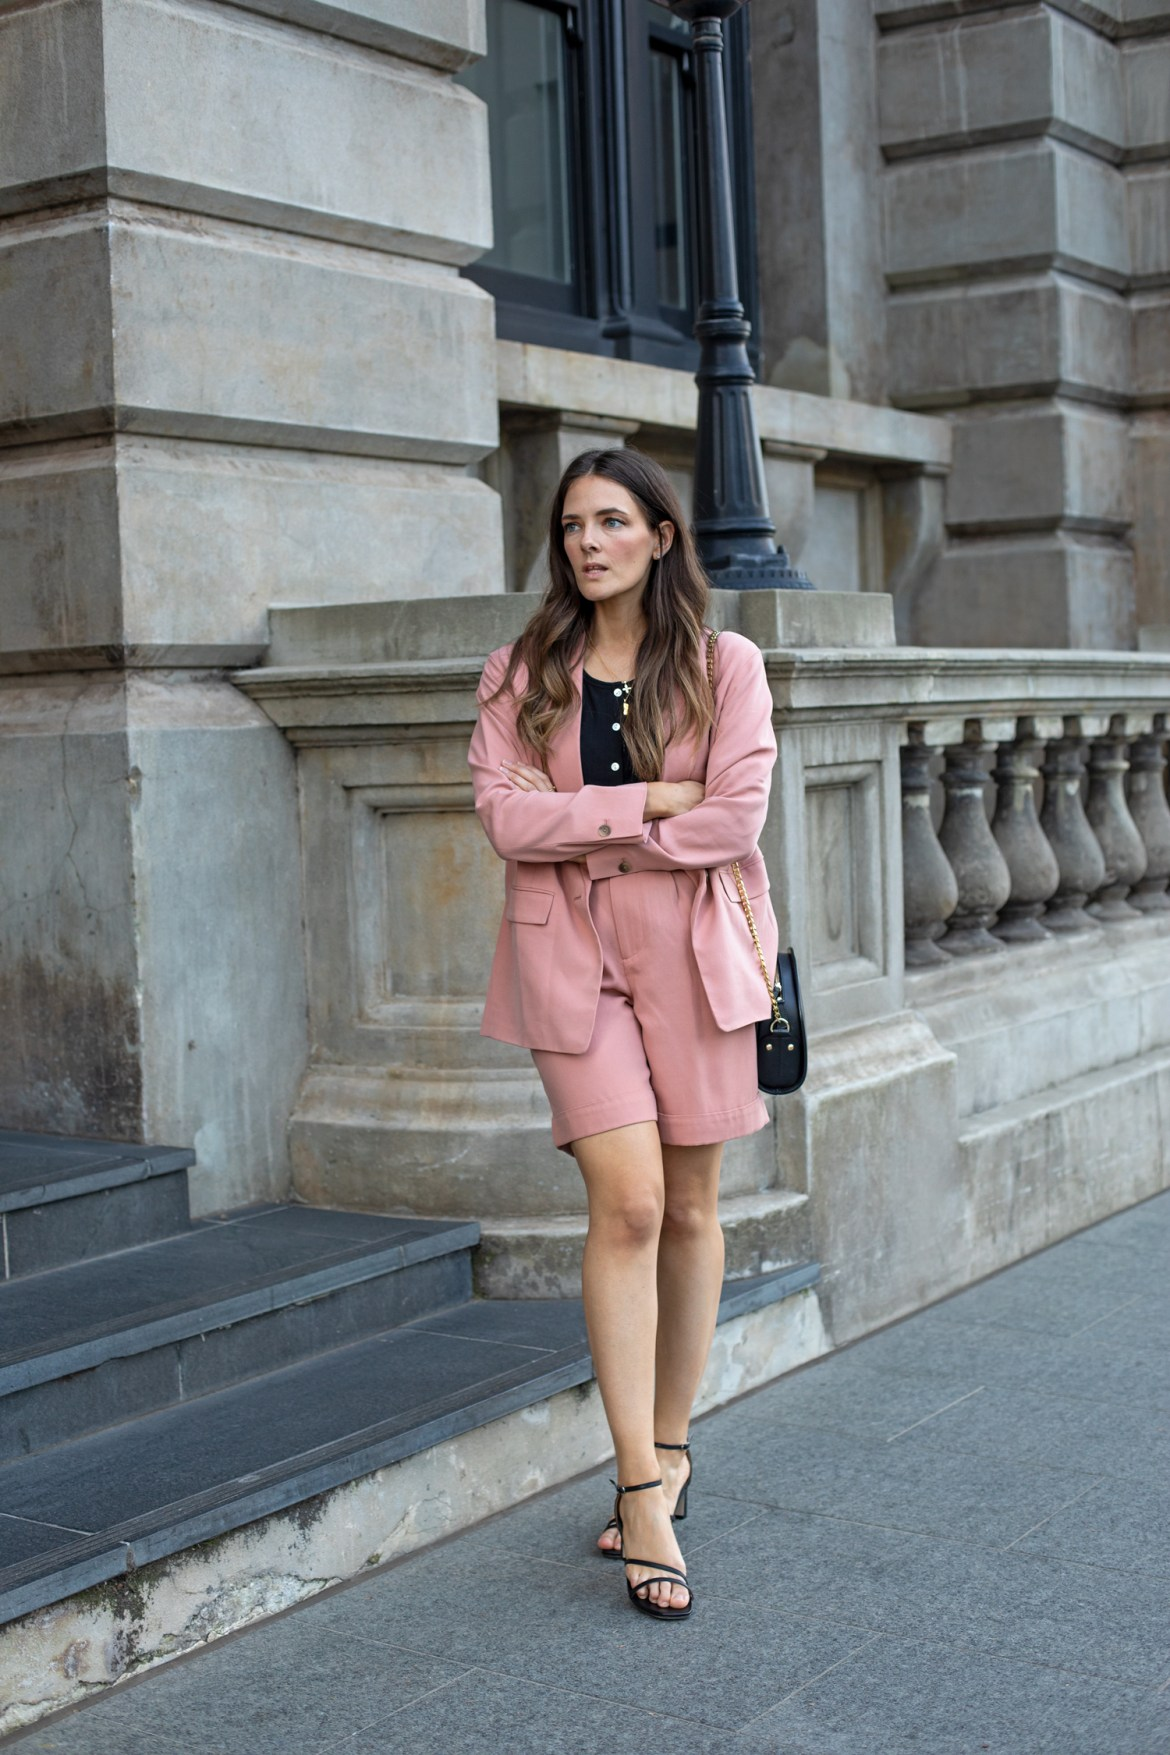 suits and strappy heels for a chic summer outfit